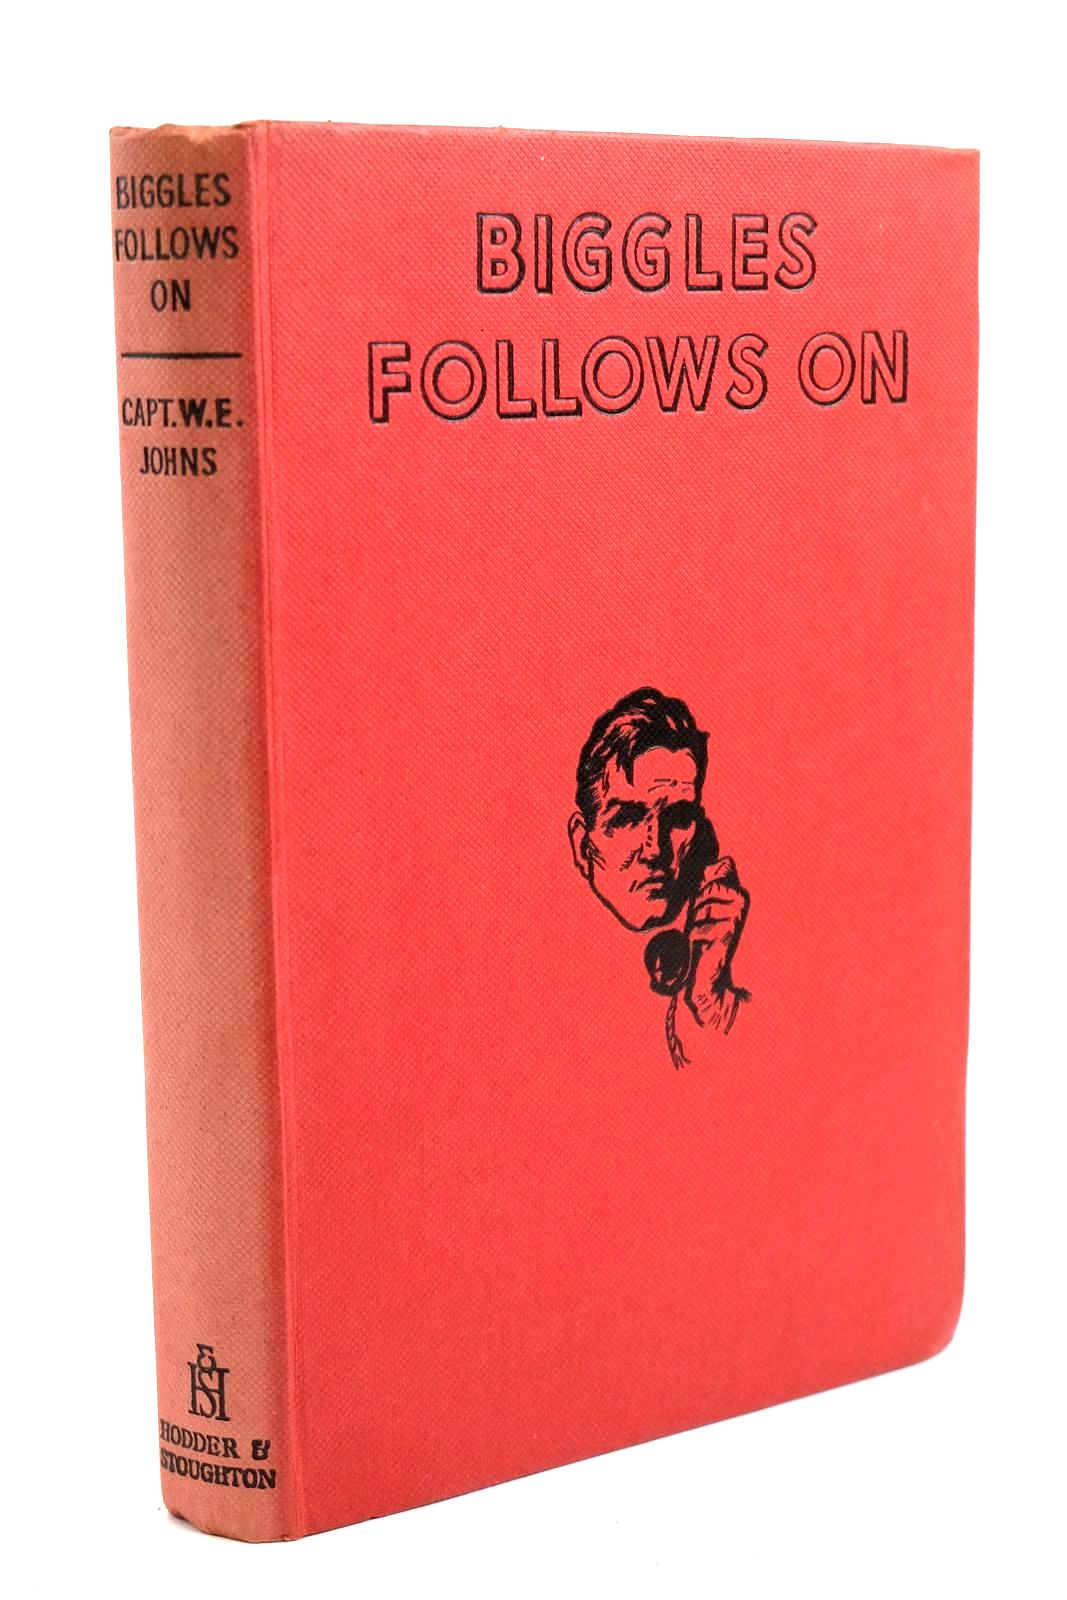 Photo of BIGGLES FOLLOWS ON written by Johns, W.E. illustrated by Stead,  published by Hodder & Stoughton (STOCK CODE: 1320693)  for sale by Stella & Rose's Books